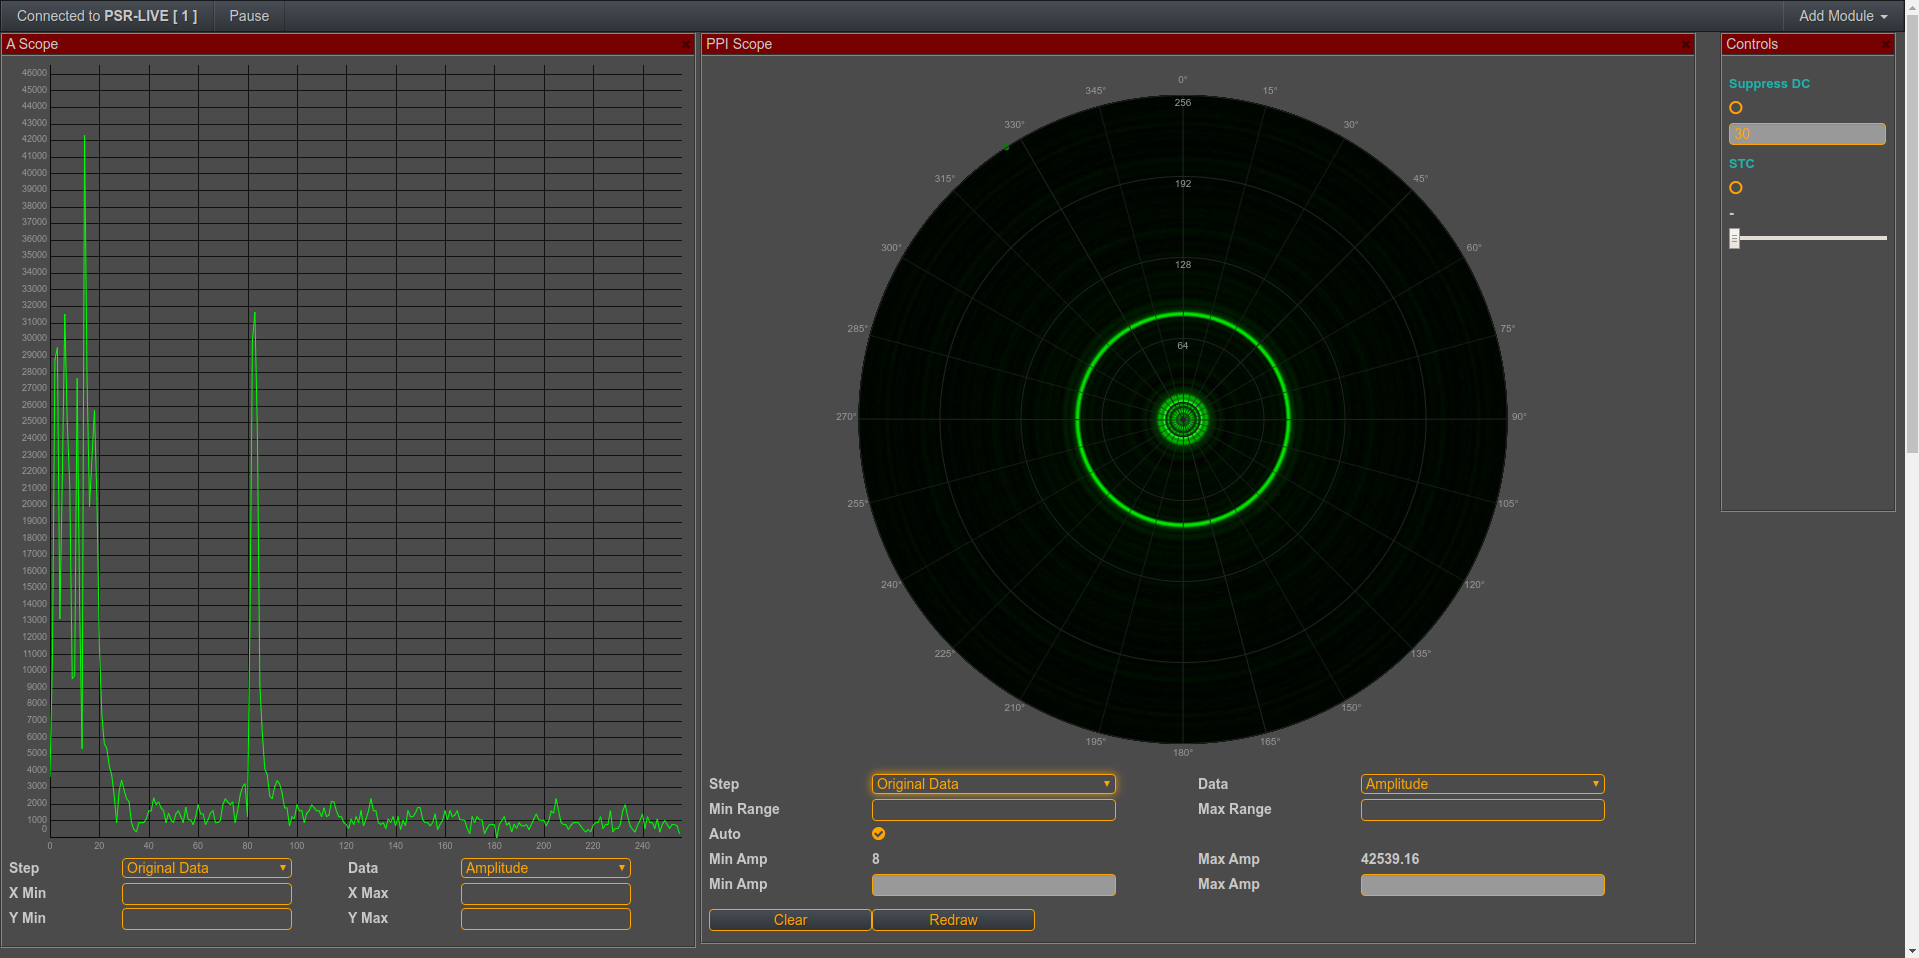 PSR Radar - And we can add PPI-Scope from the Add Module menu. It's possible to select and show different processing steps in PPI, also showing I, Q or Amplitude data, is possible.